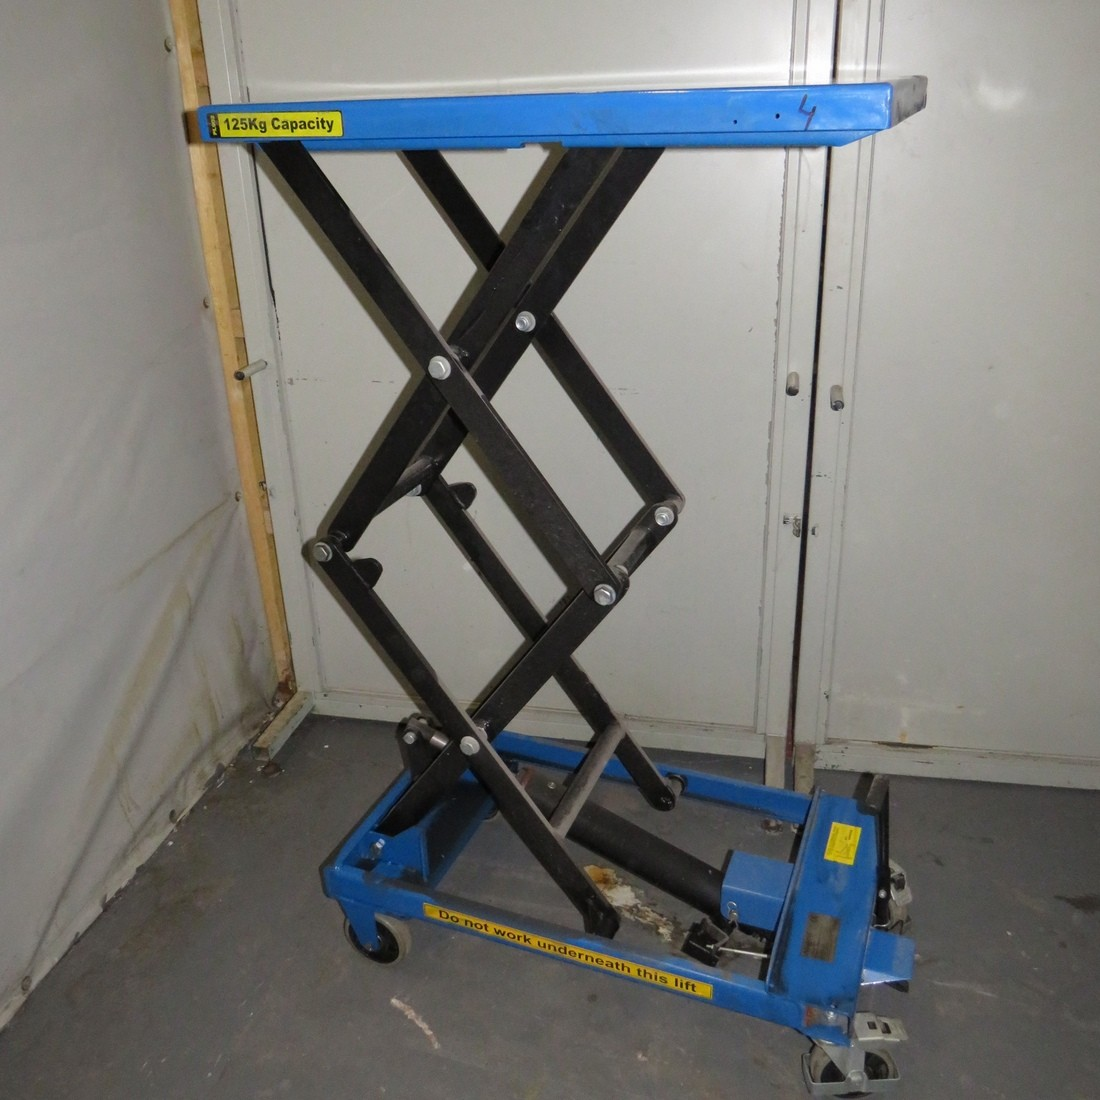 R4A788 ADUANCED manual lift table - 125 Kg - Plate 500X980mm